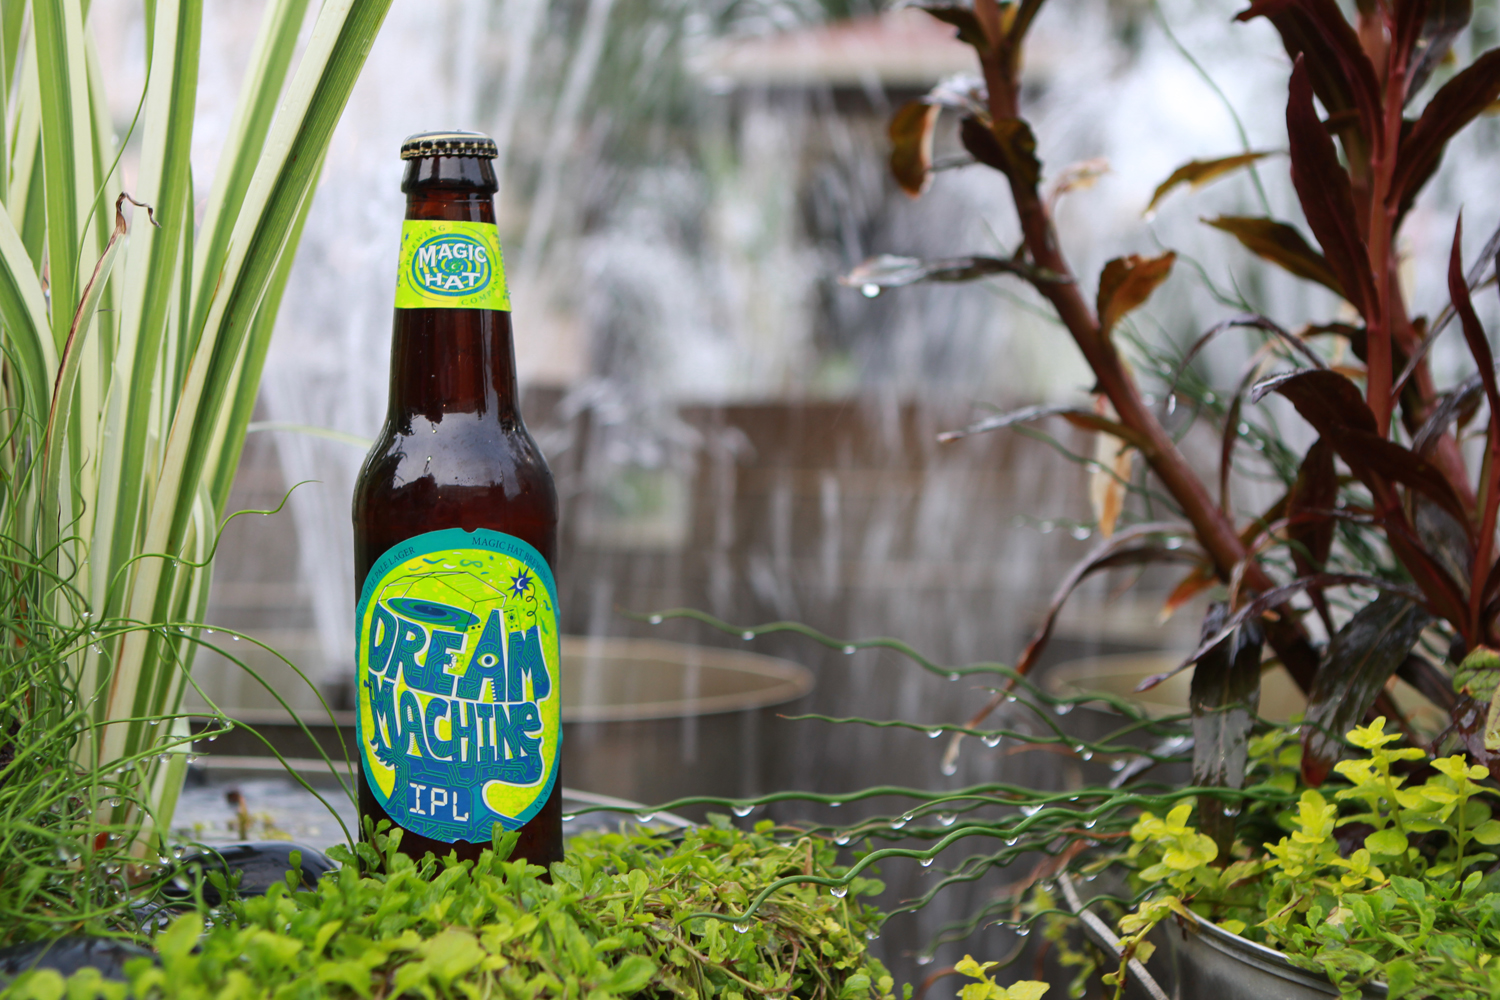 Take a ride on the Dream Machine summer IPL beer.